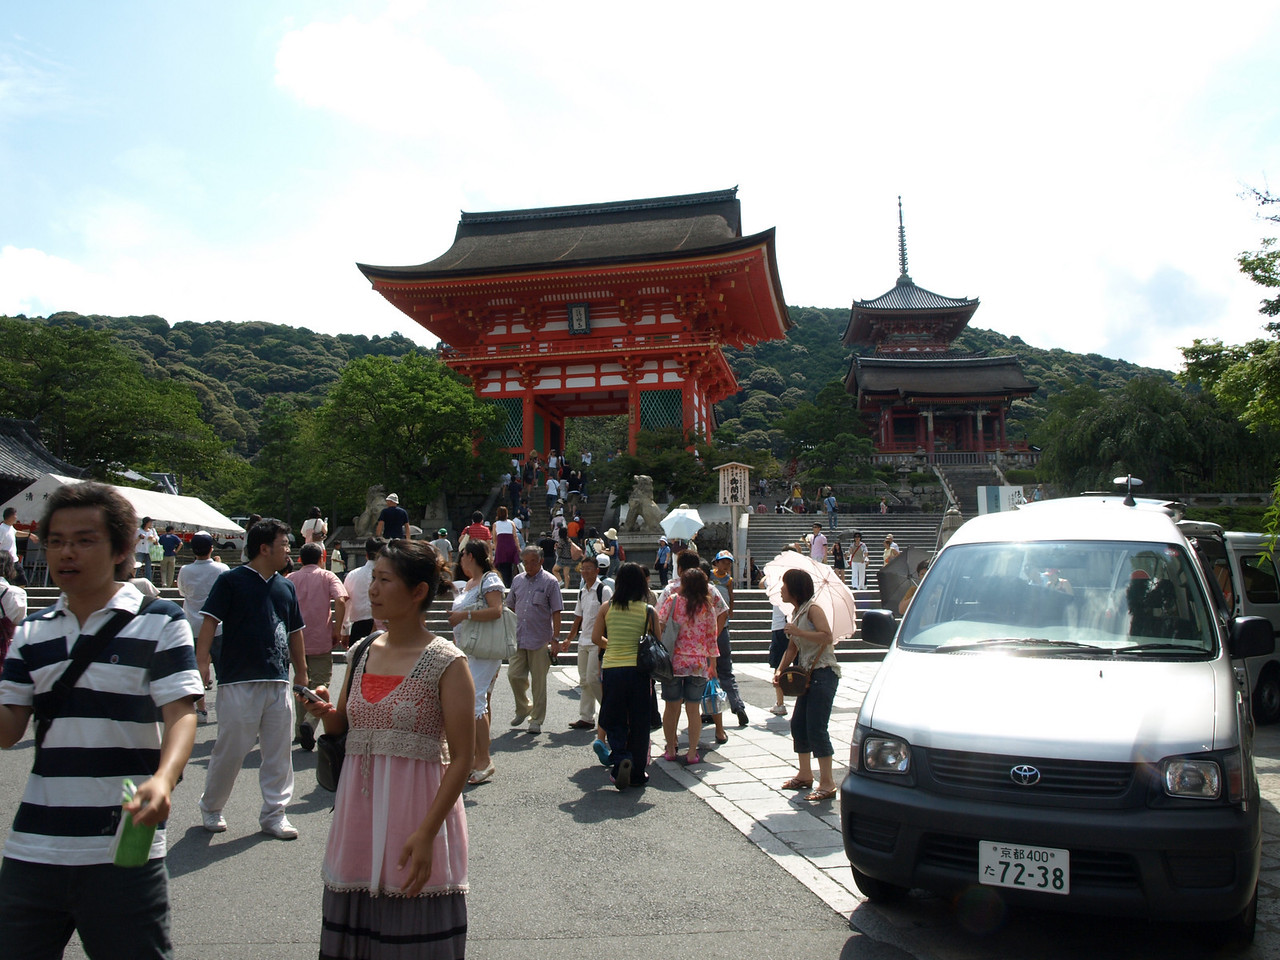 Looking back, we bid farewell to Kiyomizu